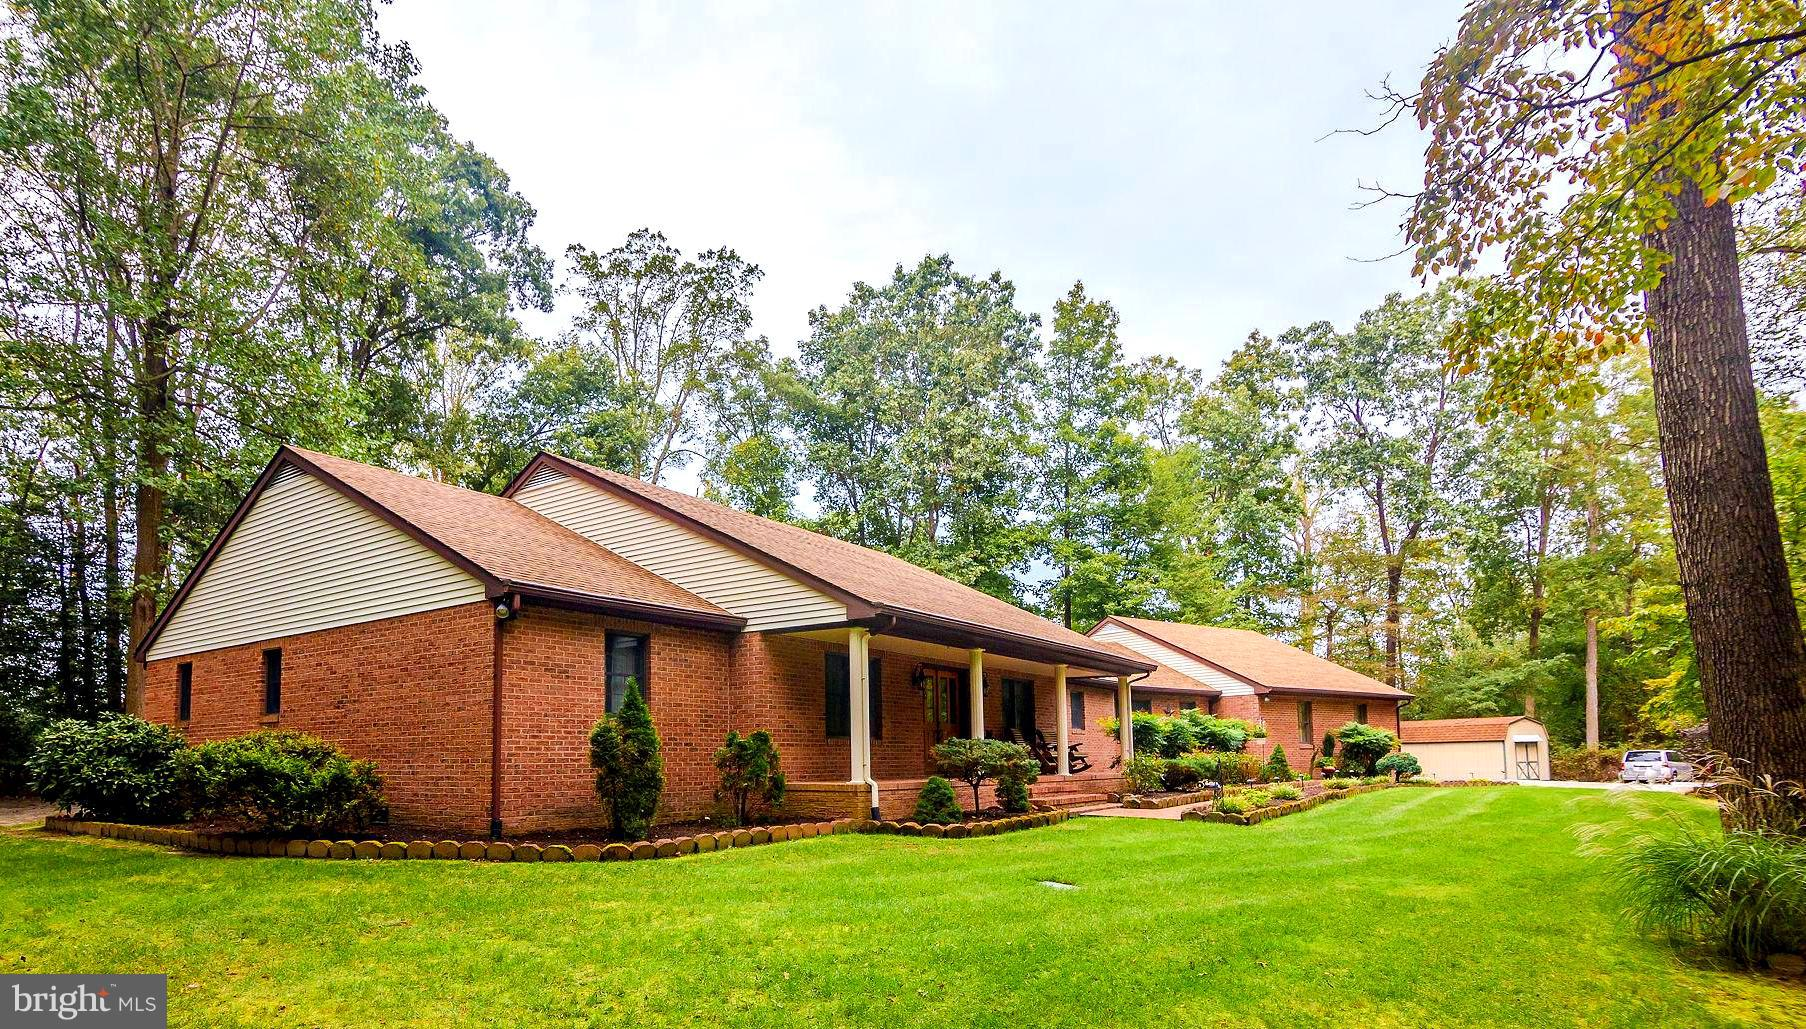 Pride of ownership and quality of construction shows in this all brick rancher with attached three c